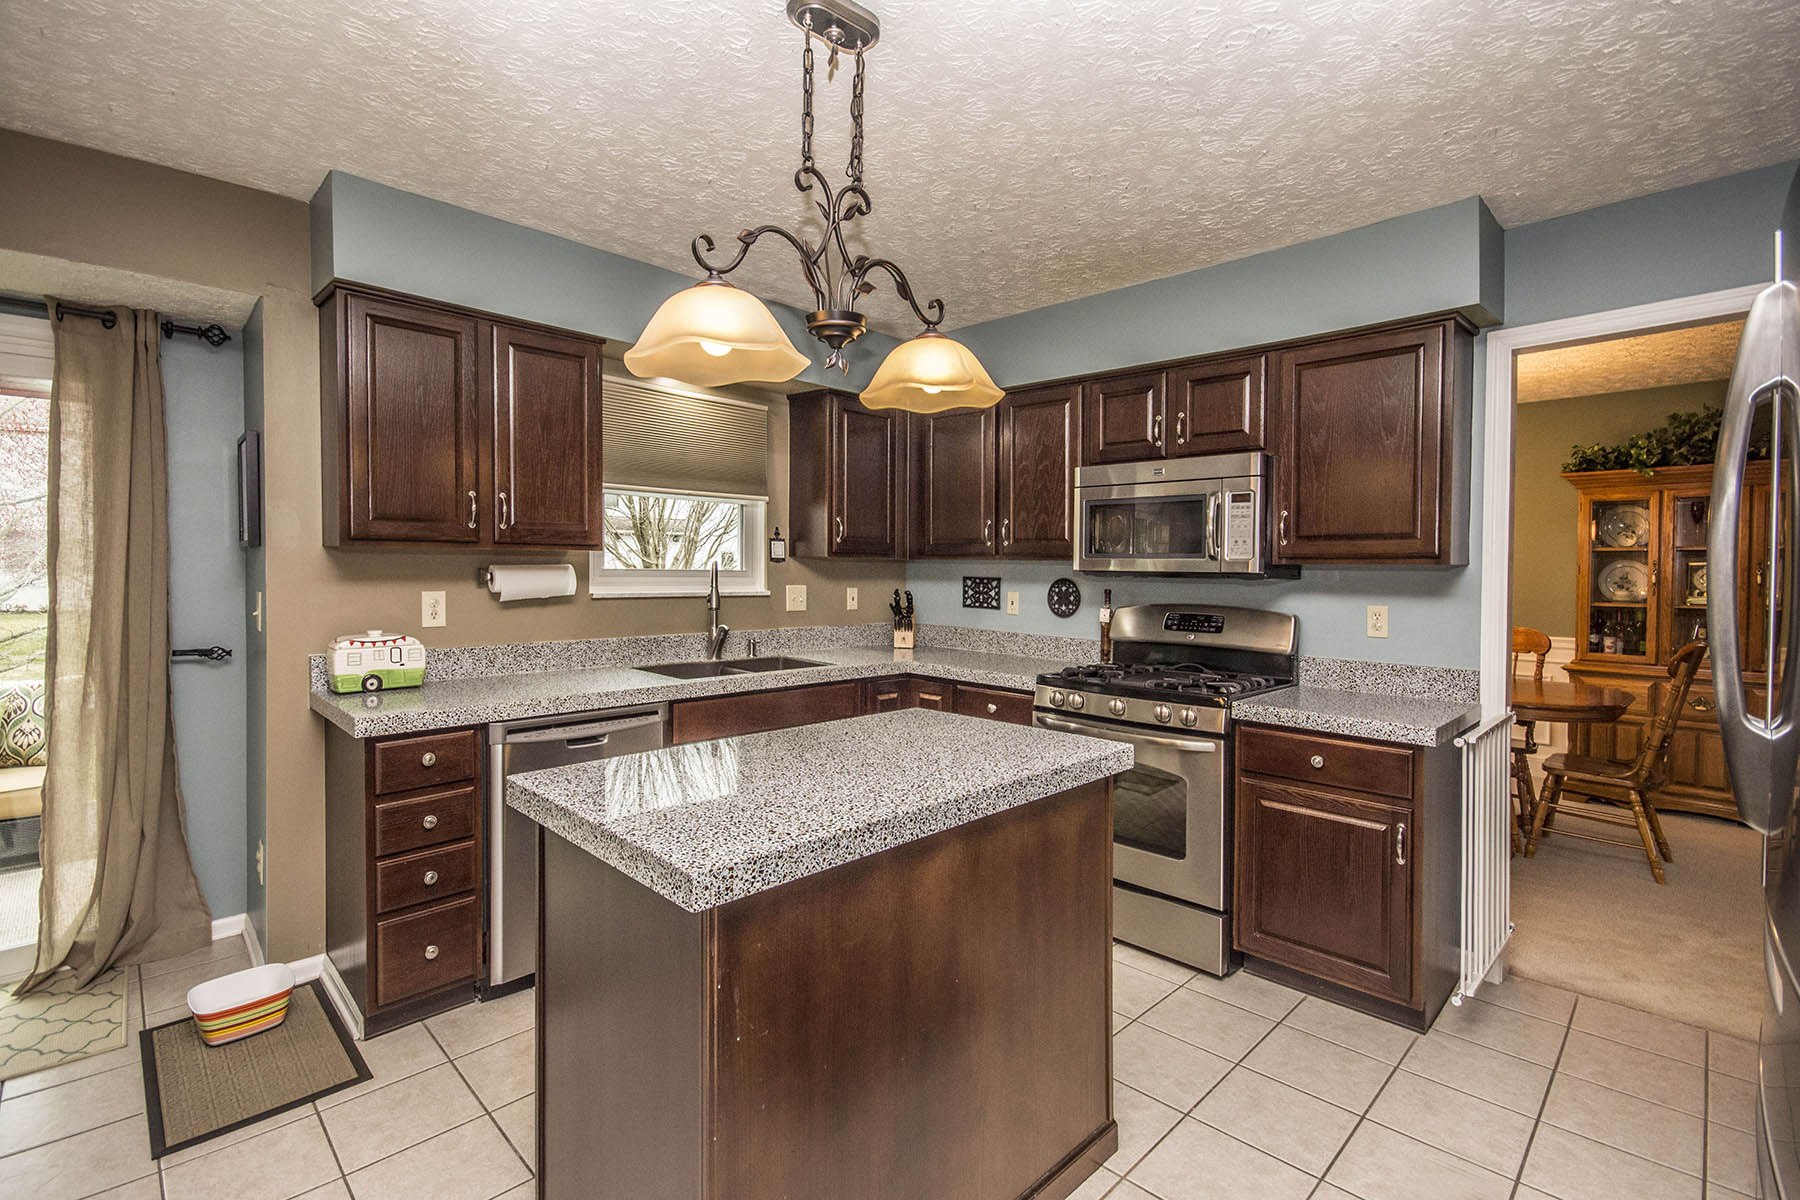 Kitchen in Mariners Cove Westerville OH Home